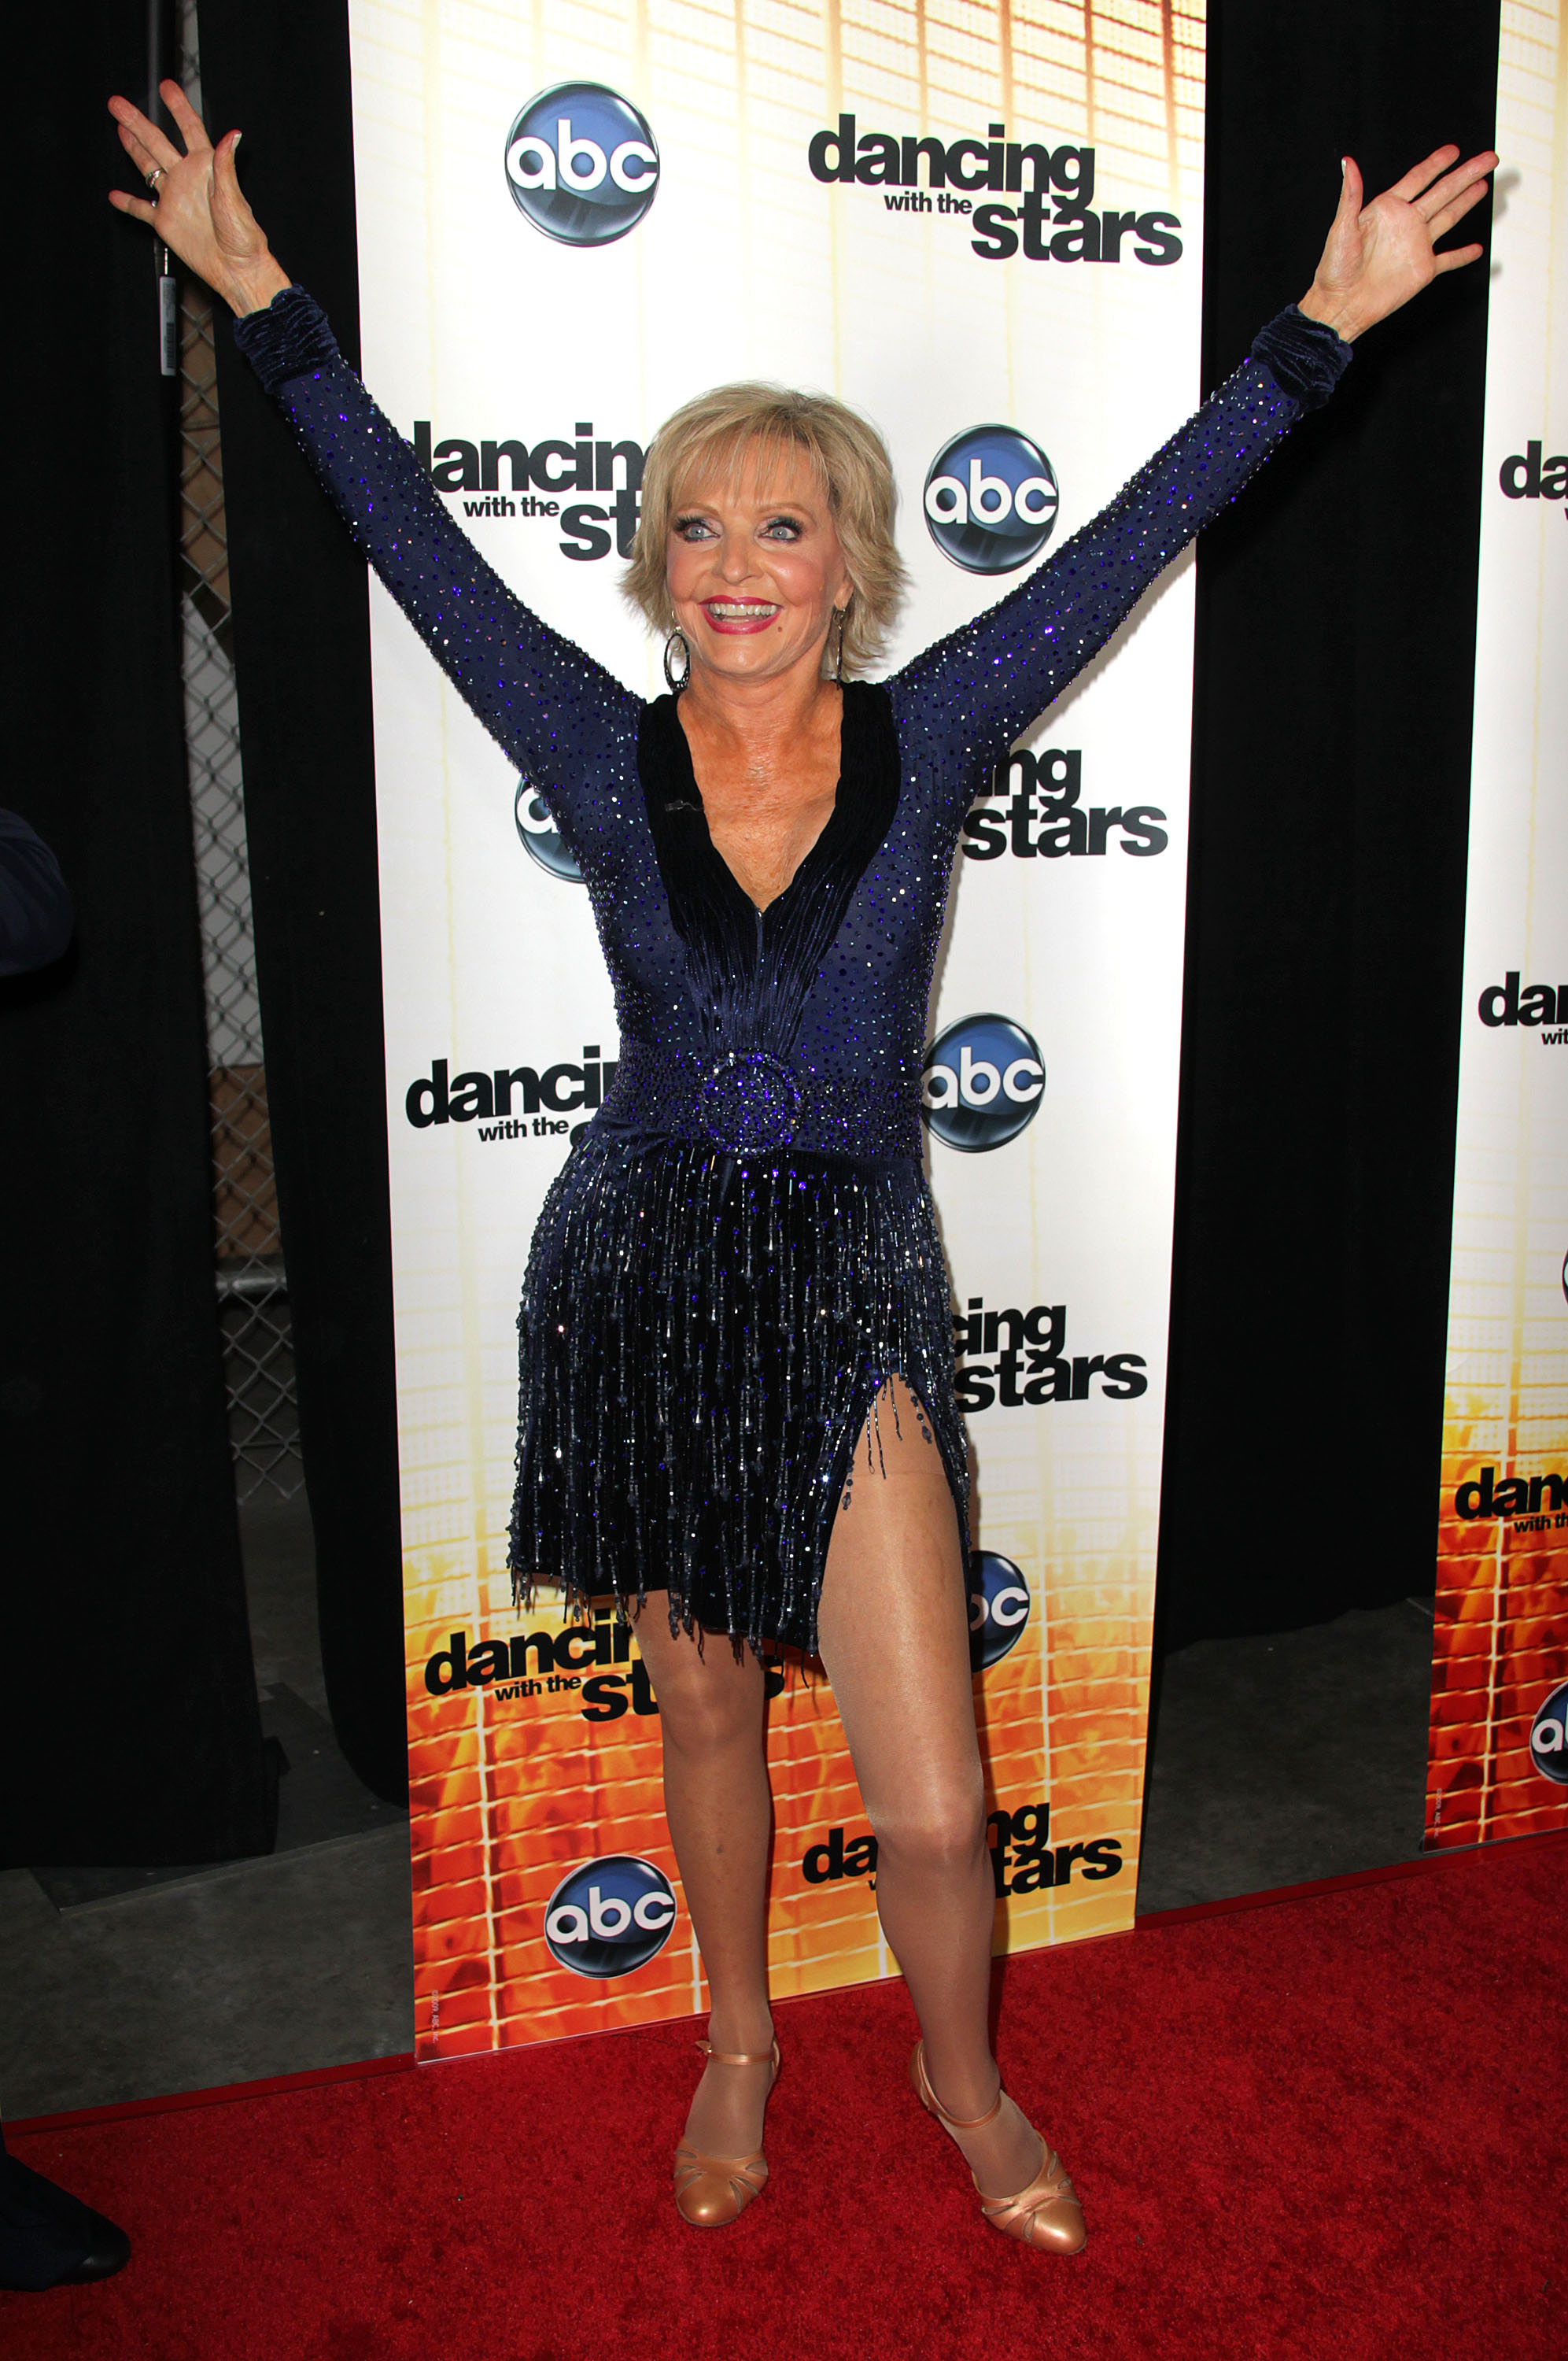 Florence Henderson Dedicates DWTS Performance to Late TV Hubby